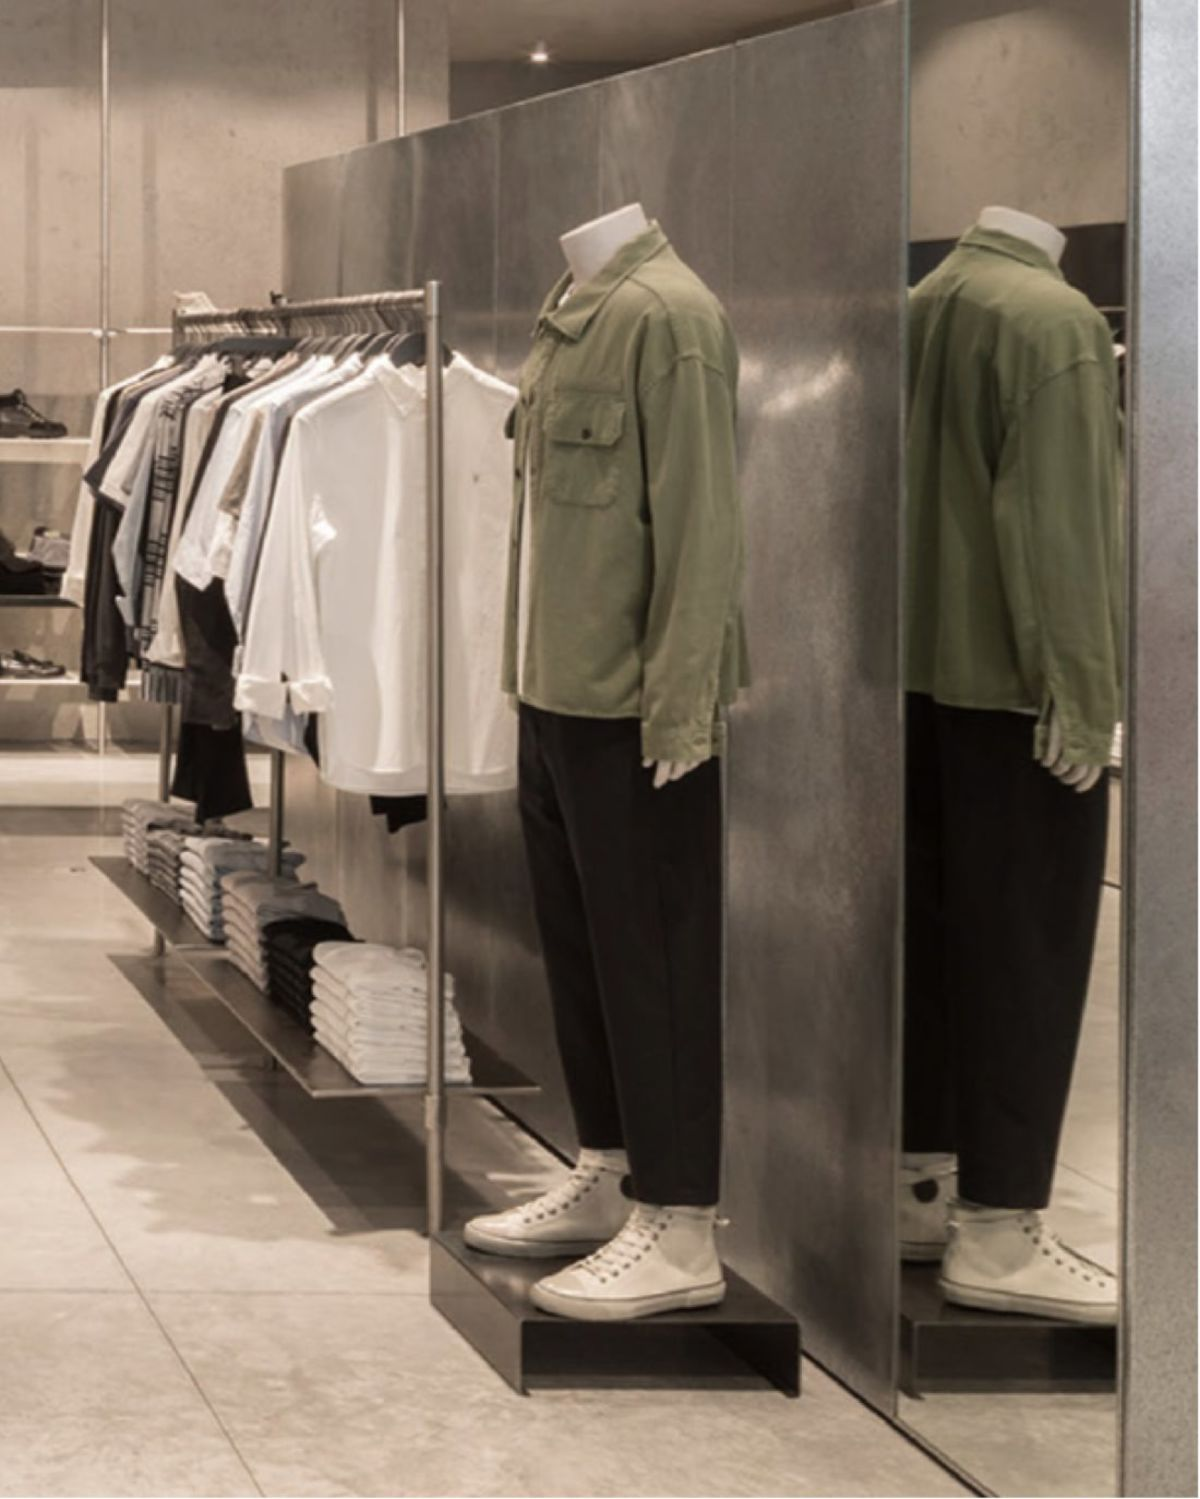 Mannequin in store near items from the men's collection.